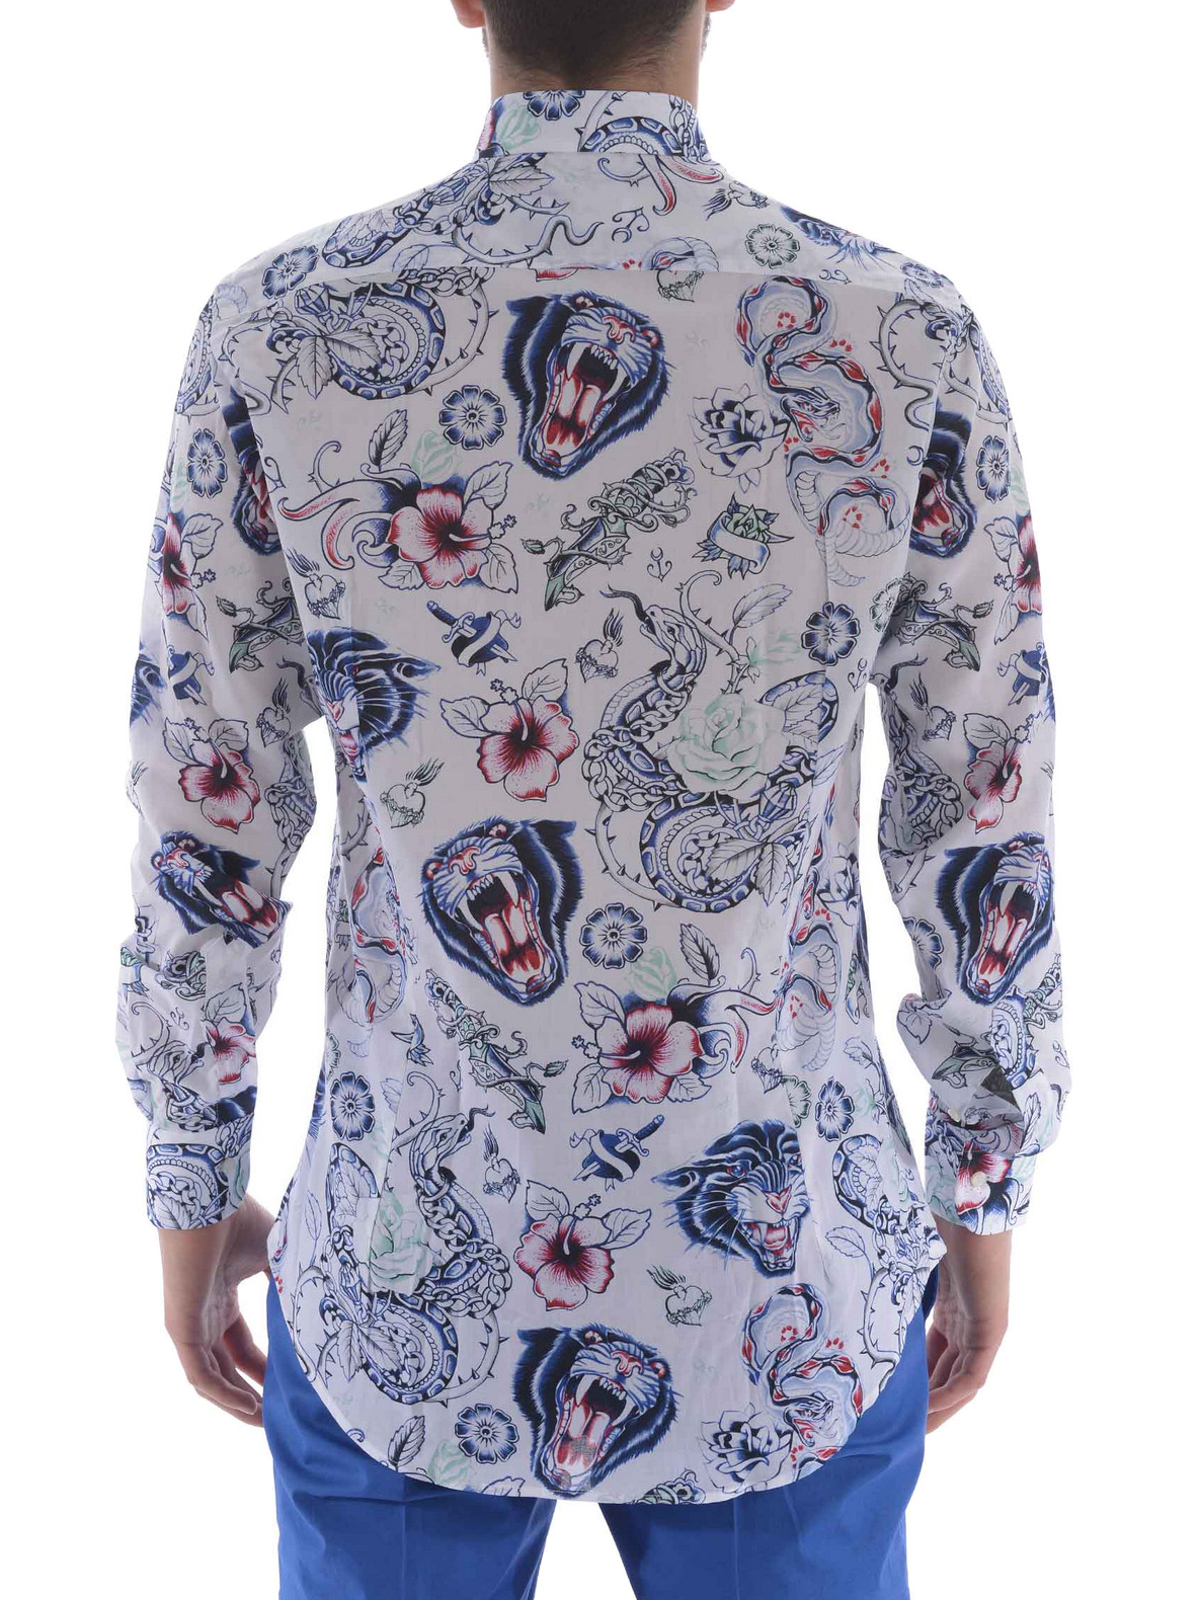 cheap for discount 0aaa1 08d8d Etro - Camicia in cotone stampa tattoo - camicie - 129086258991